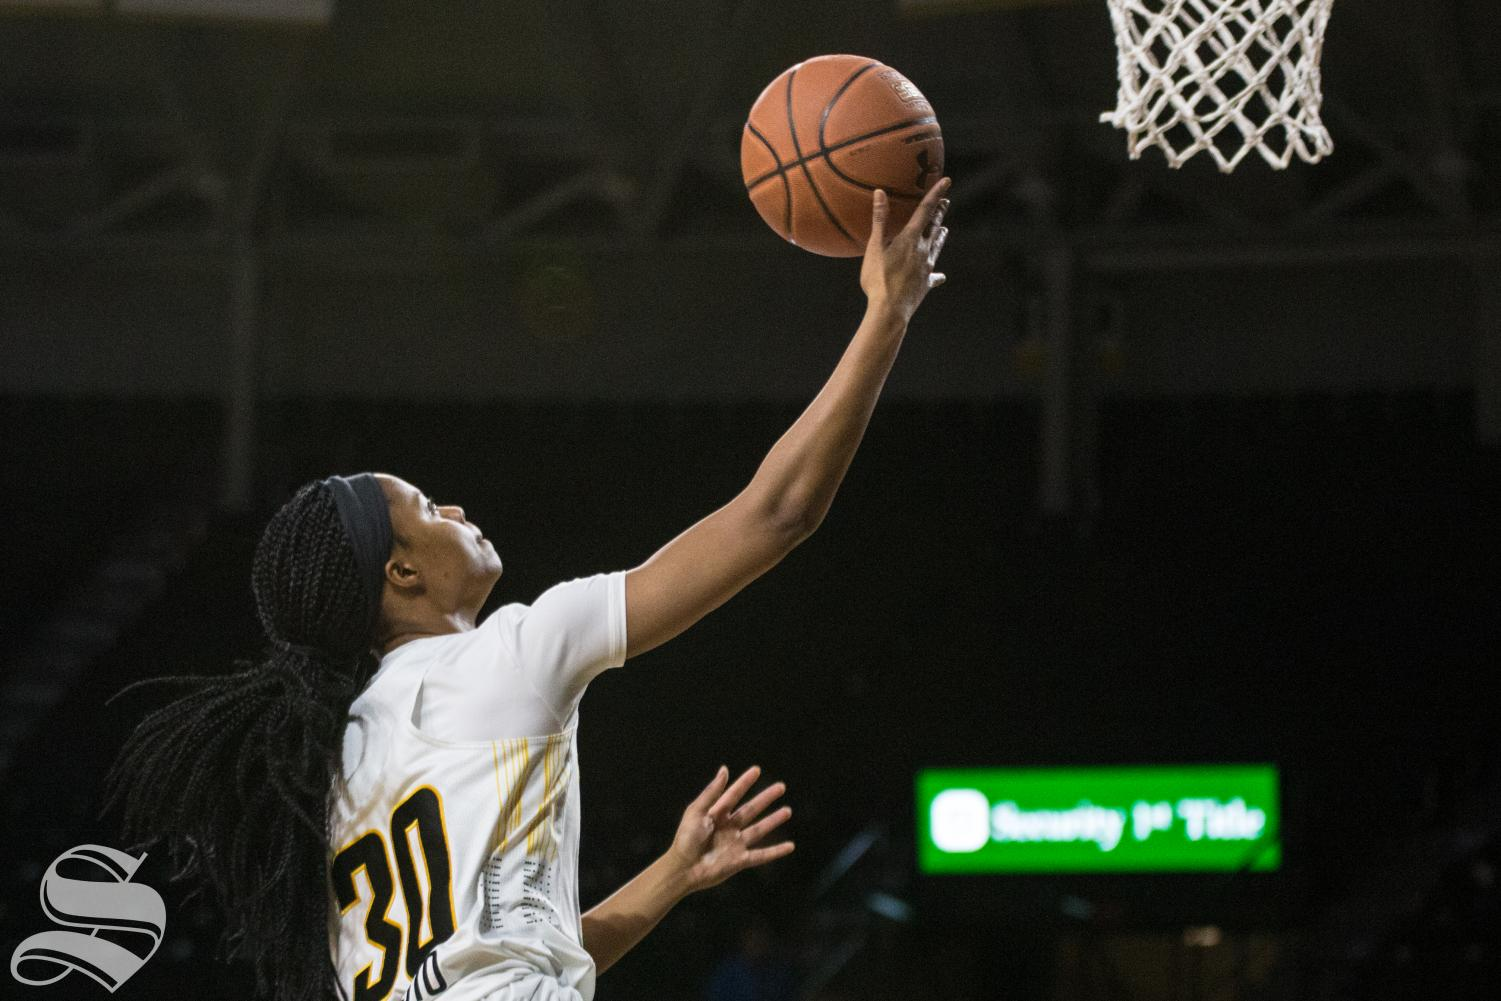 Wichita State's Cesaria Ambrosio goes up for a lay up during the game against Savannah State.